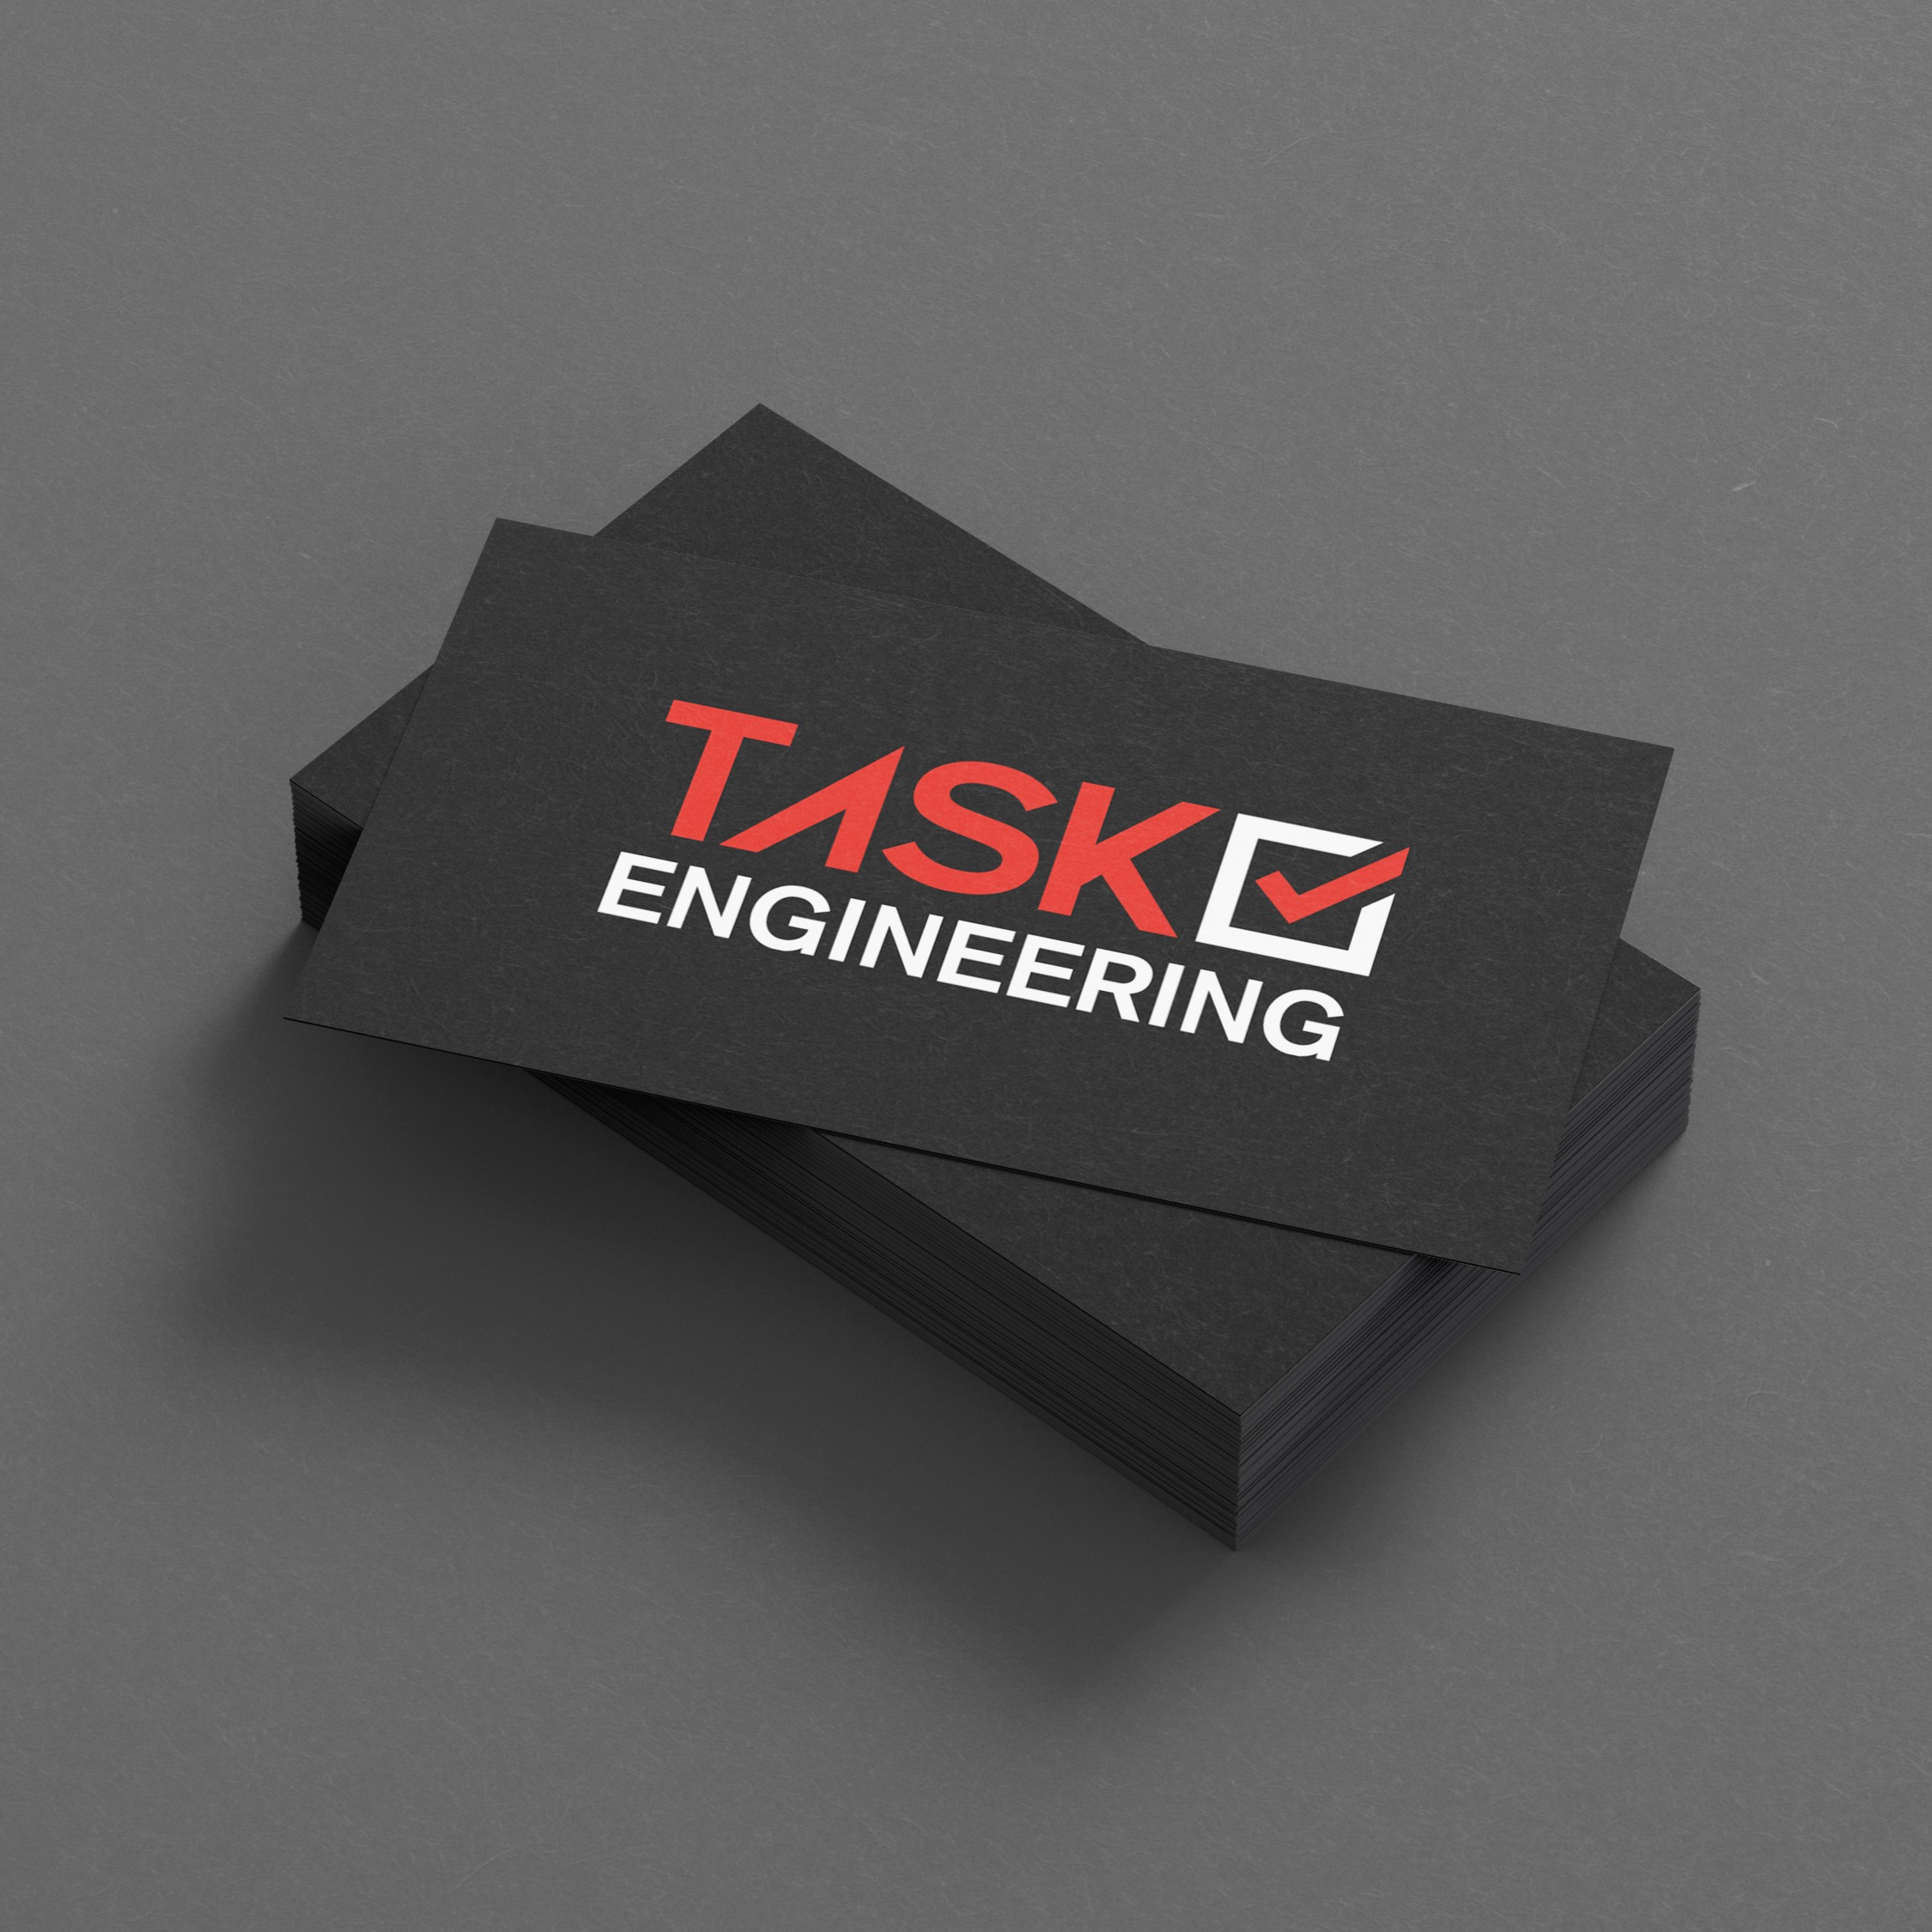 Task%20Engineering%20-%20Business%20card